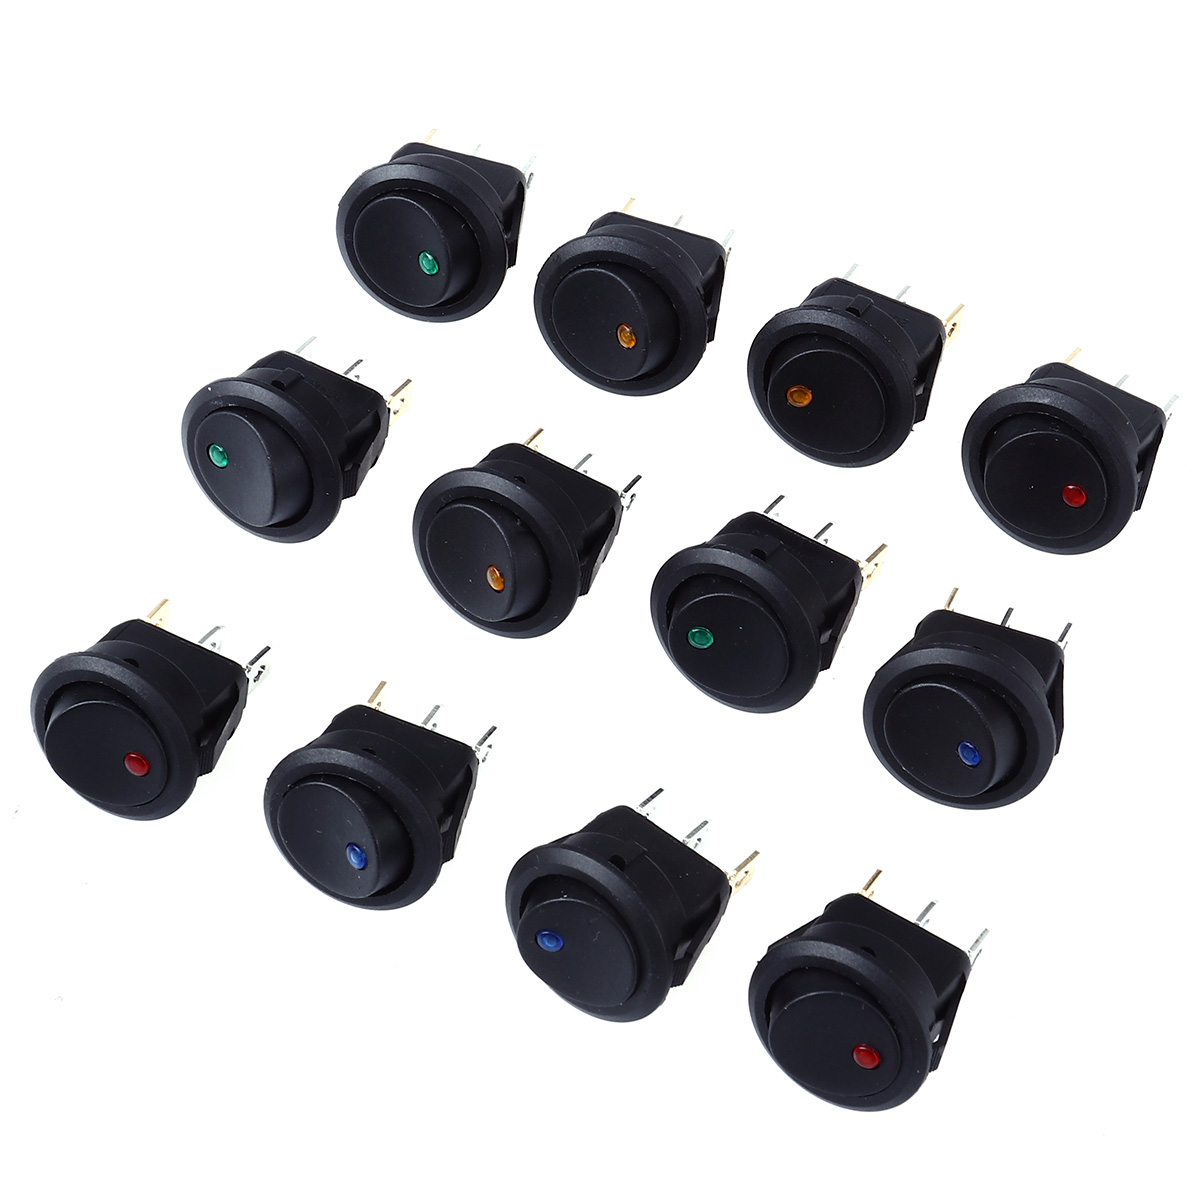 12 PCS 12V 20A Car Truck Round Rocker Toggle LED Switch SPST On-Off Control With Red Blue Green Yellow Bulbs A30